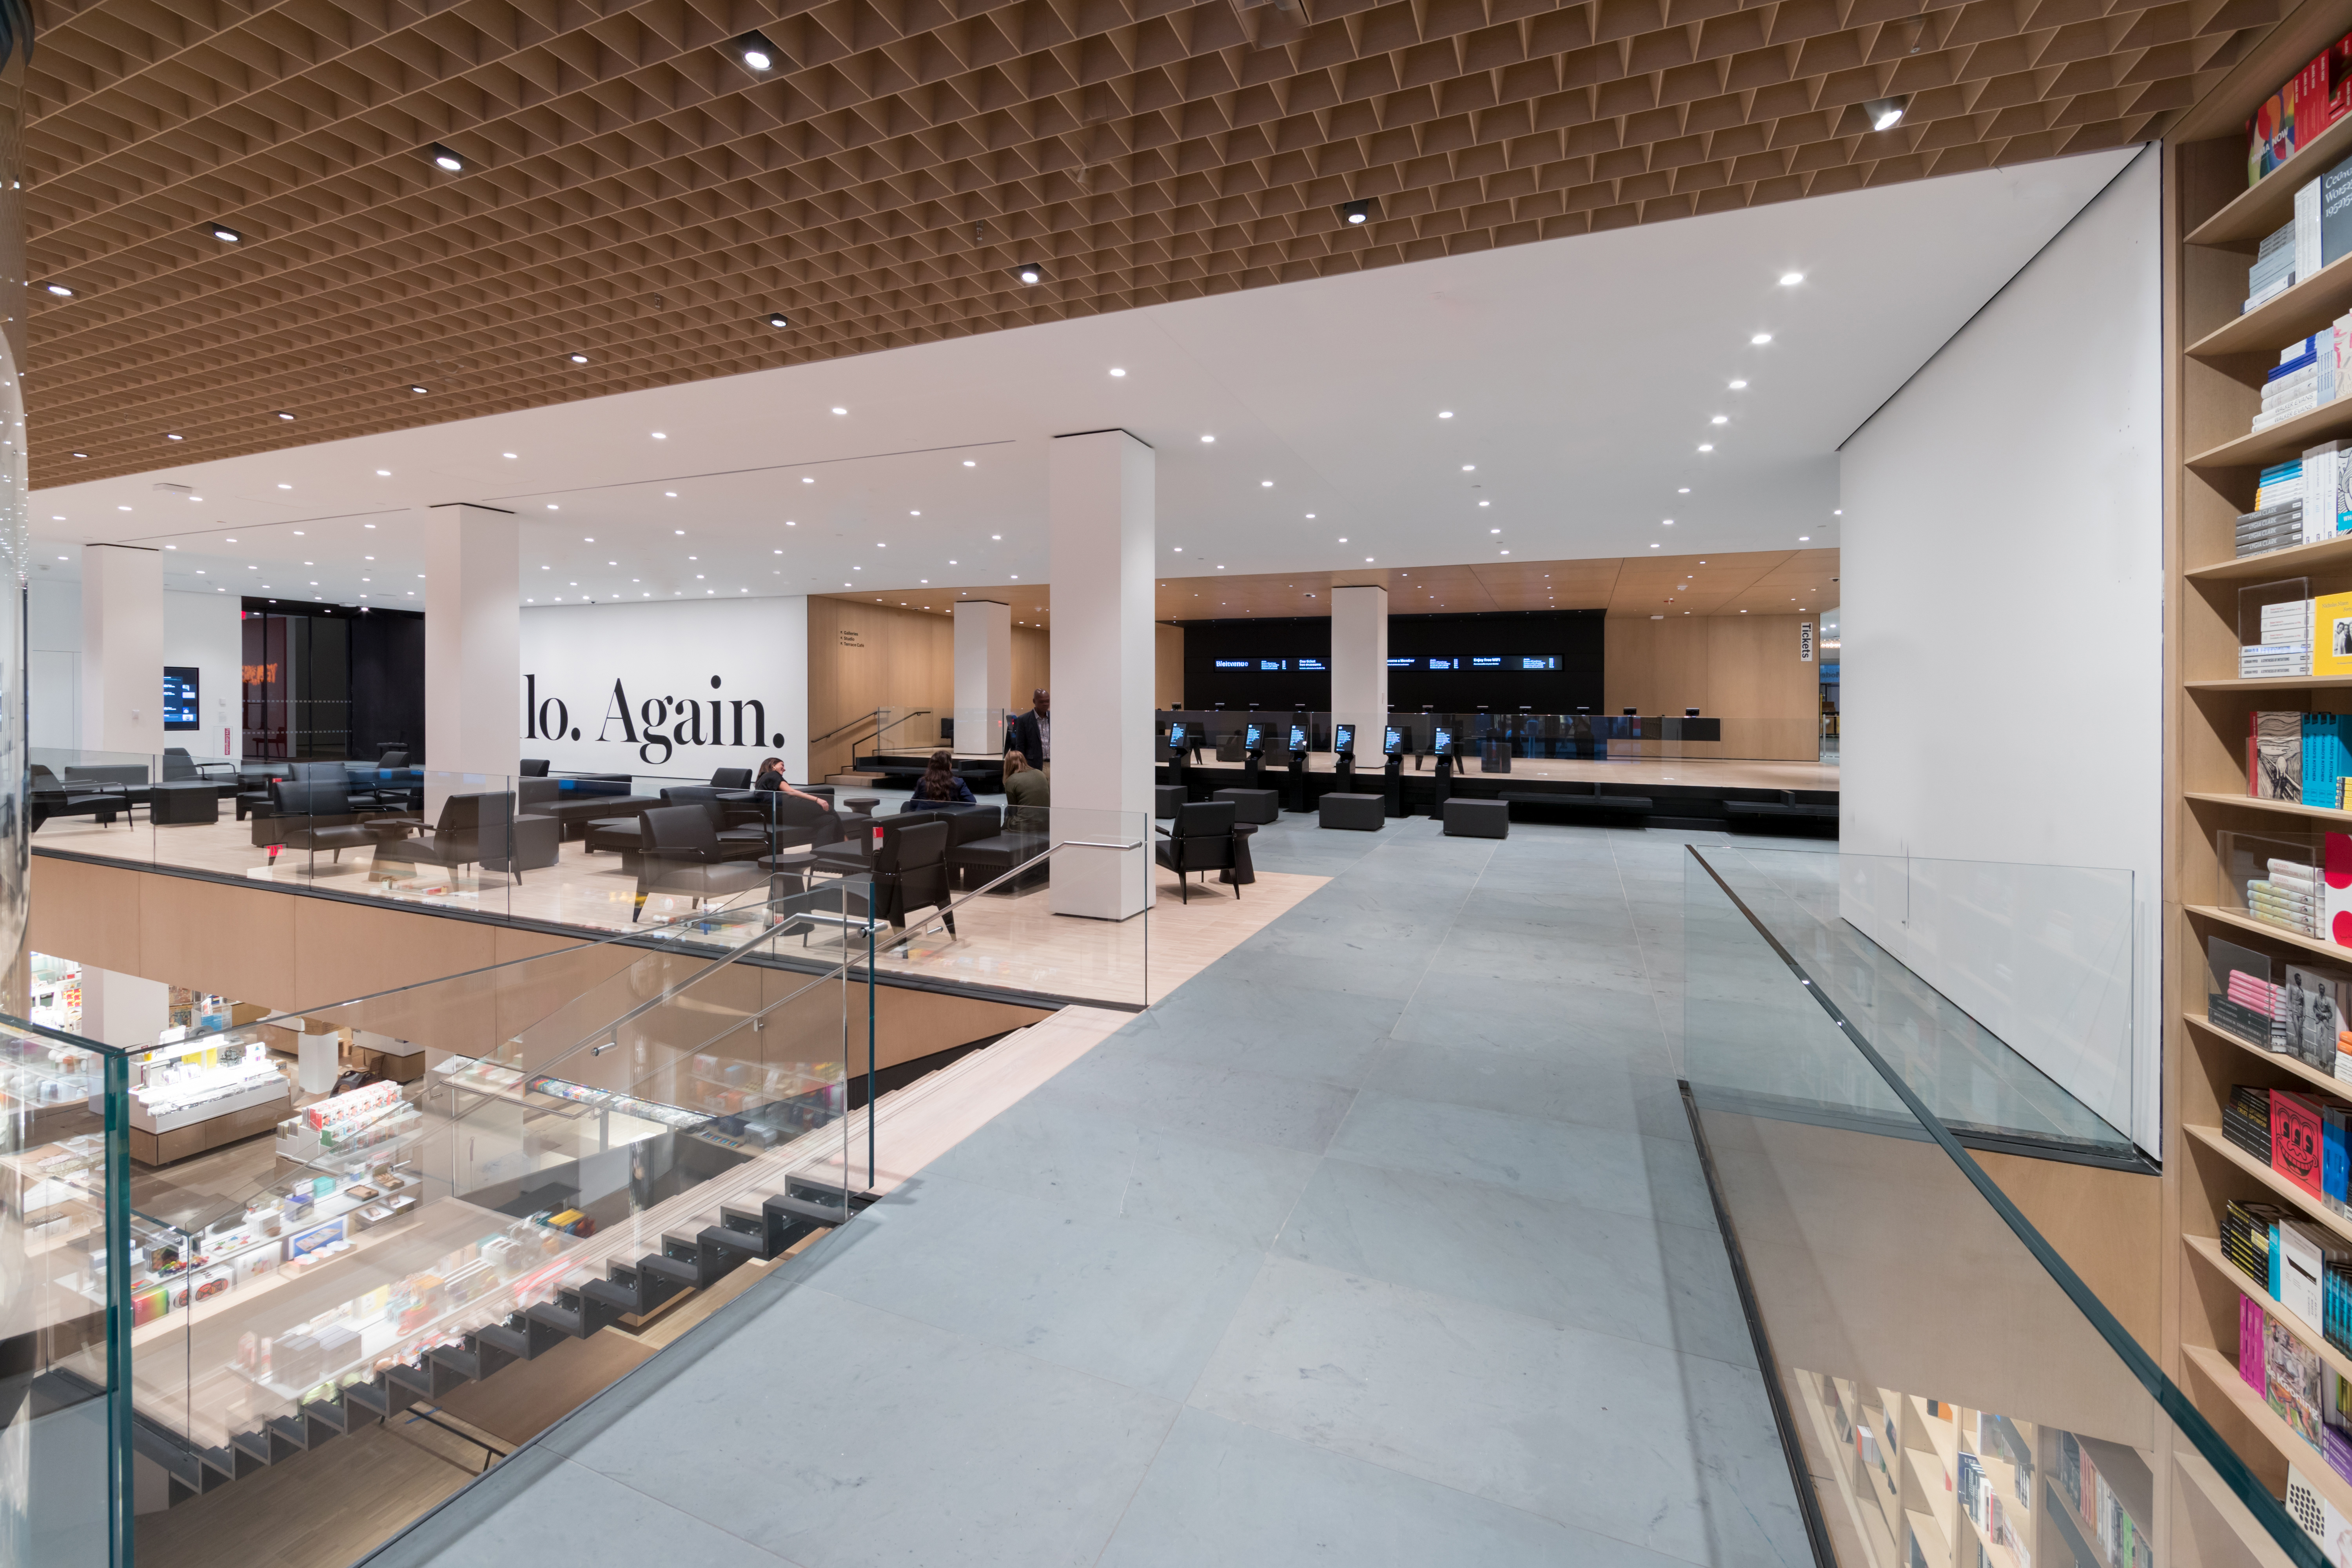 <p>Fase 2. Interior view of The Museum of Modern Art, Flagship Museum Store Beeld Iwan Baan. Courtesey of MoMa</p>